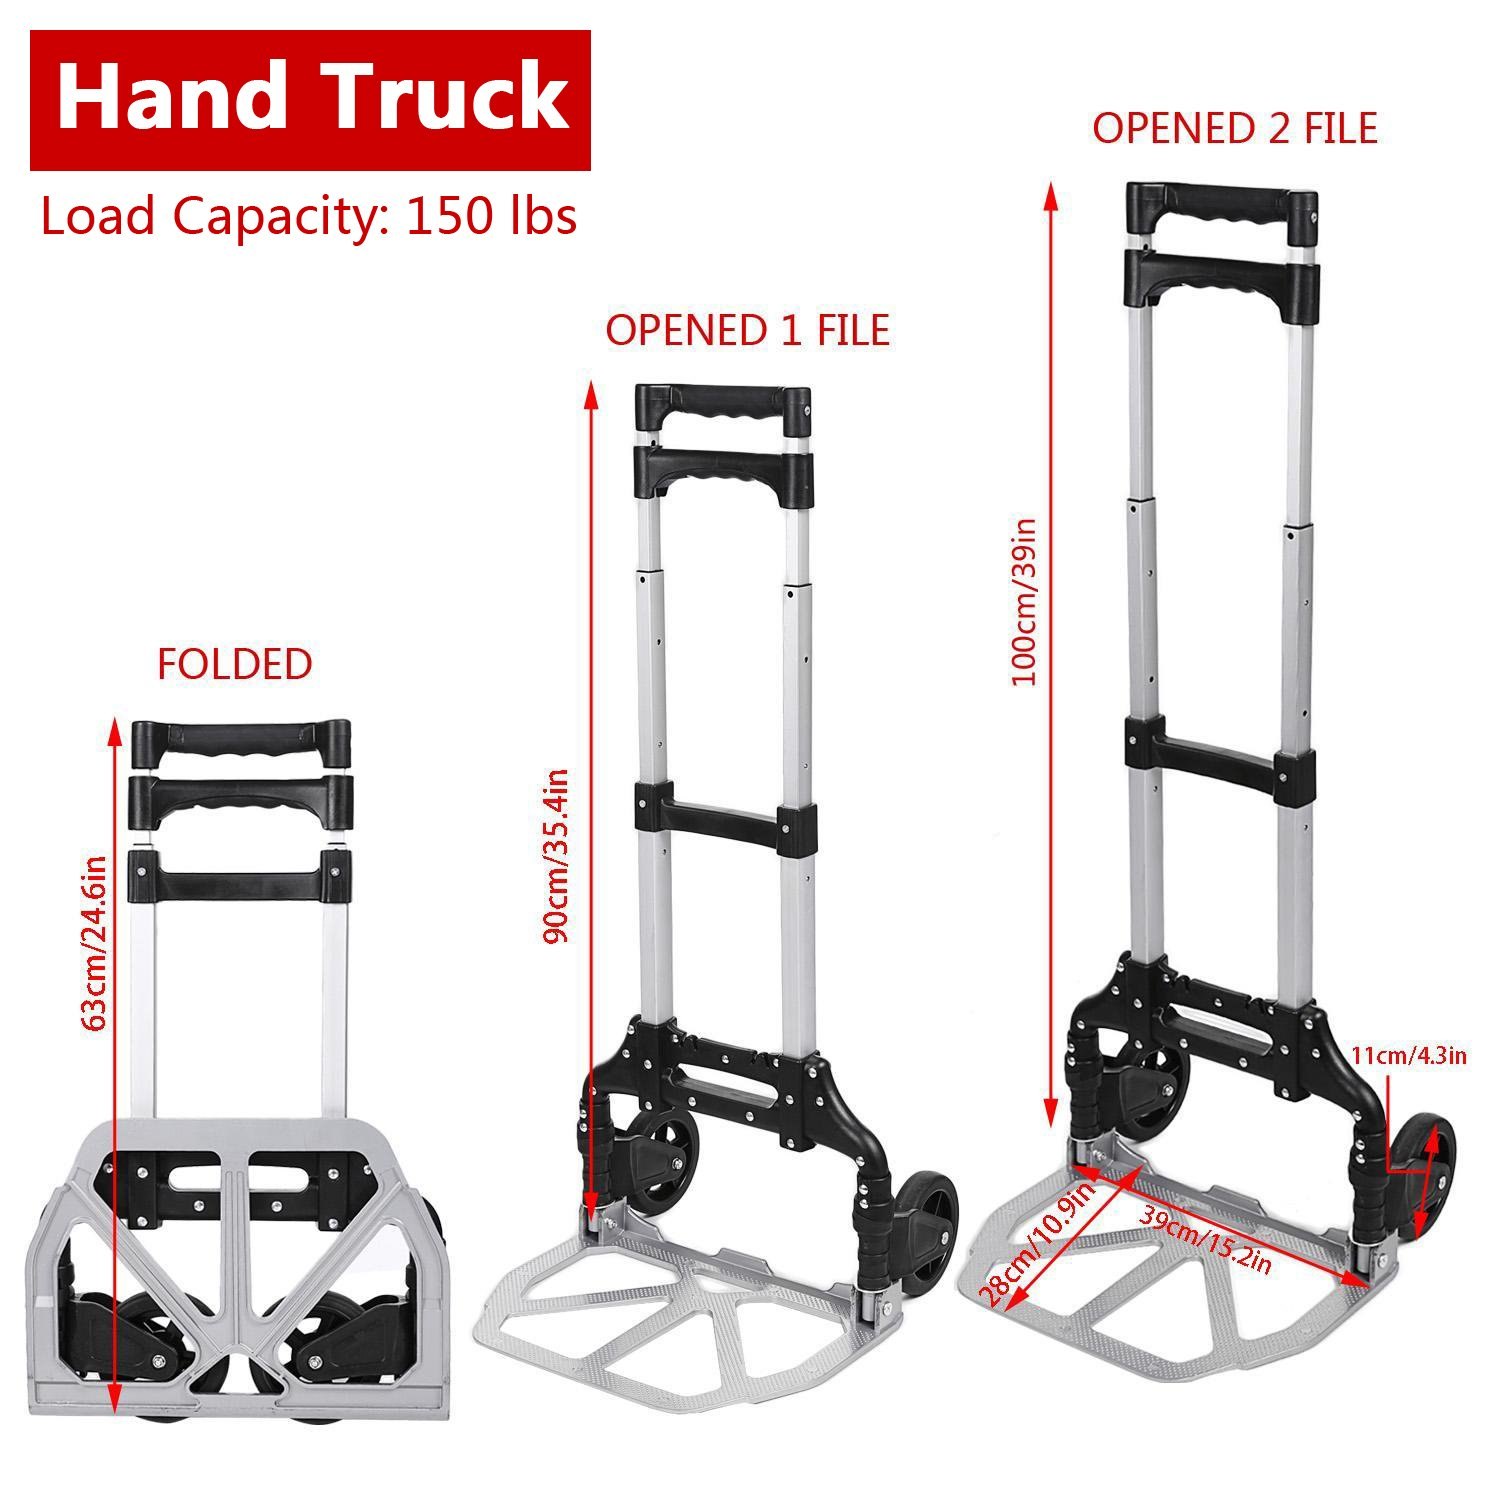 Black UK STOCK Folding Hand Truck and Dolly 75 kg Load Capacity Aluminium Alloy Utility Cart Trolley with Bungee Cords for Indoors Outdoors Travel Home Grocery Sack Truck